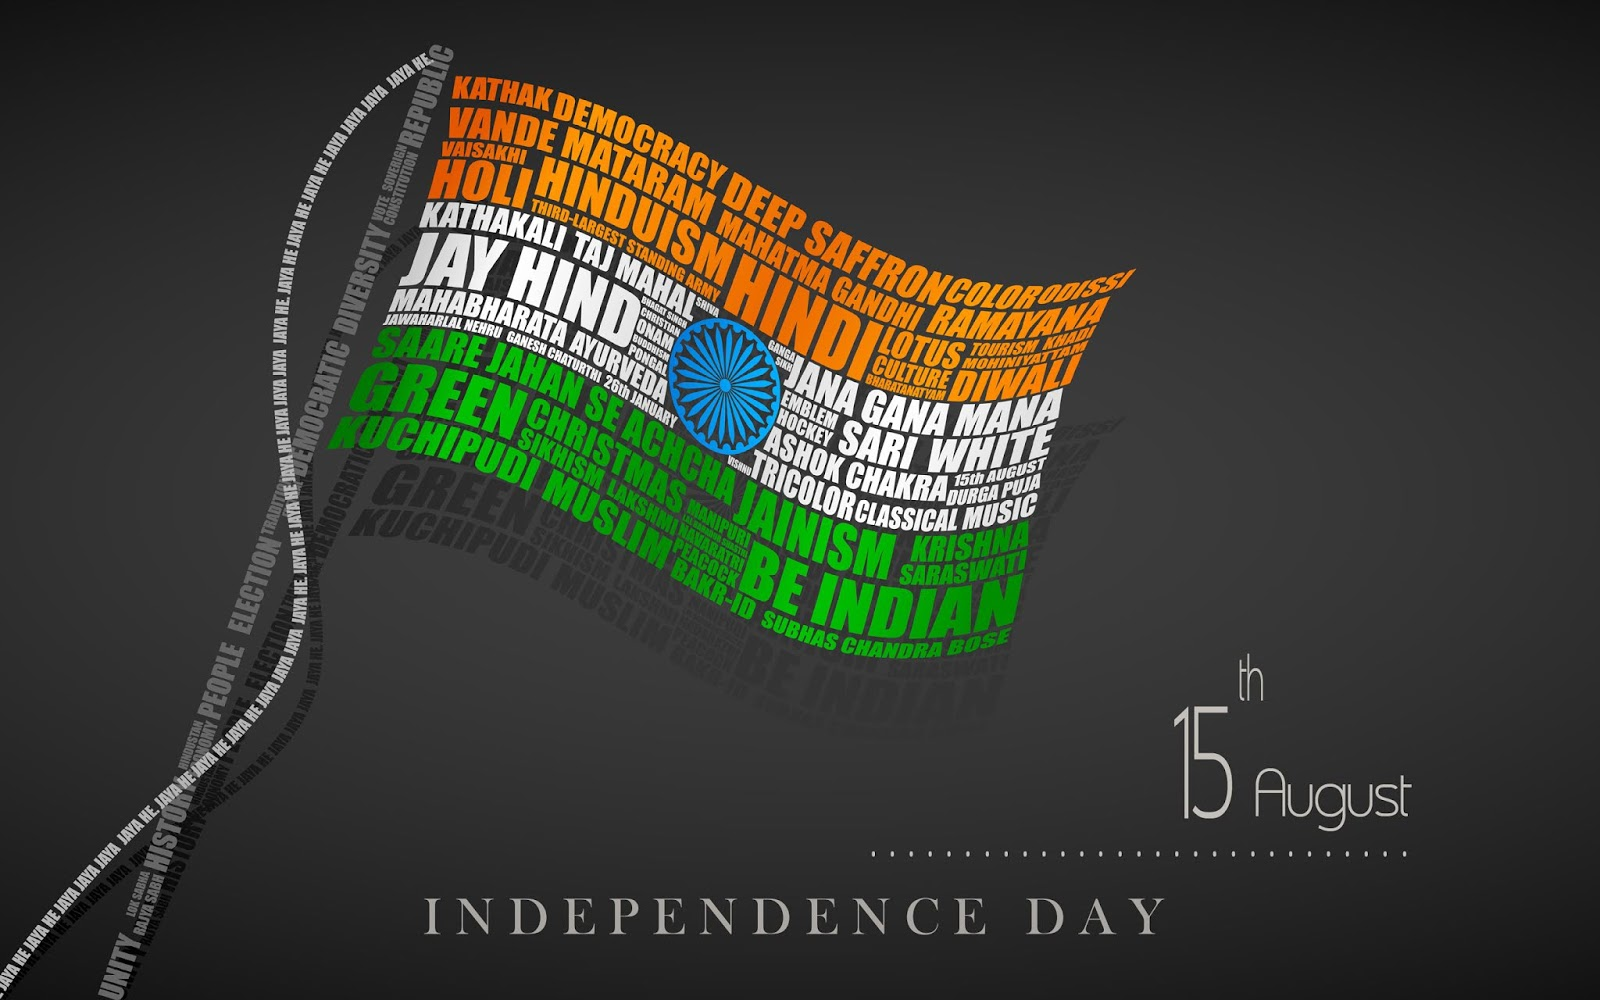 Independence Day 2018 Images Hd Pictures Photos Wallpaper Free